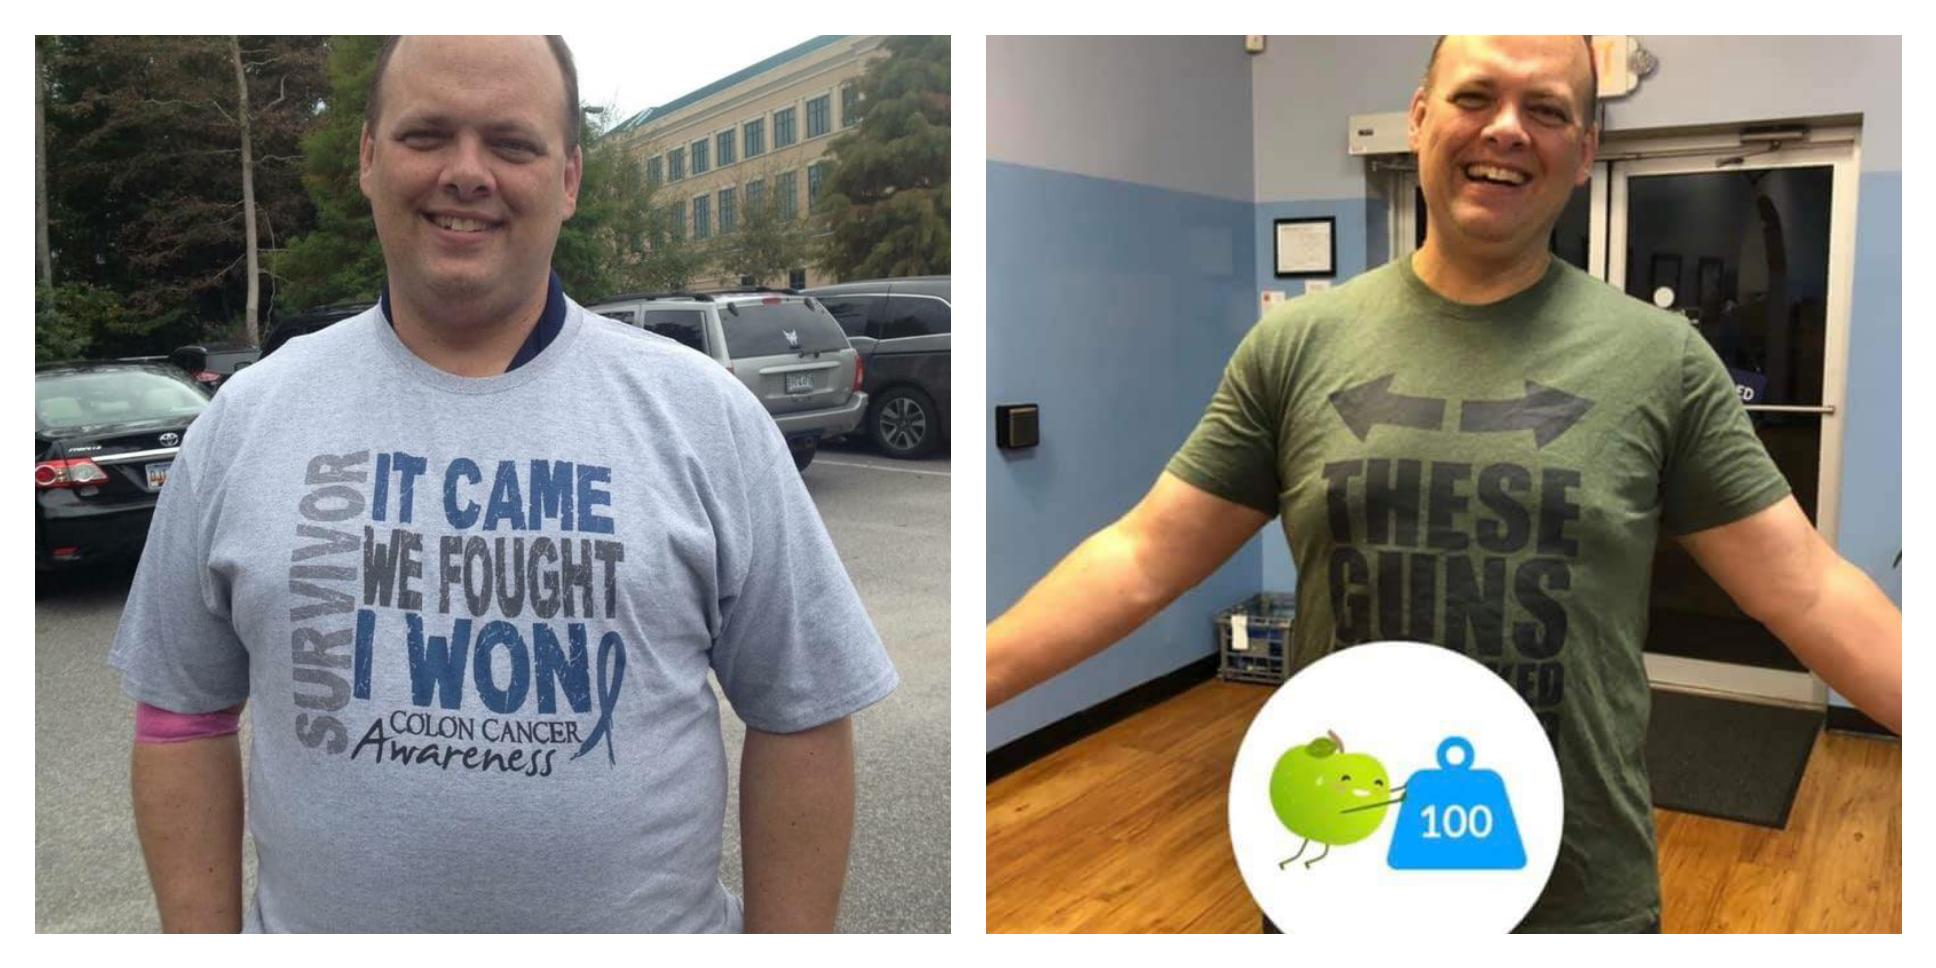 [Image] My dad lost 100 pounds this year. The doctor told him he didn't want him to be his first patient to go through chemotherapy AND a triple bypass.